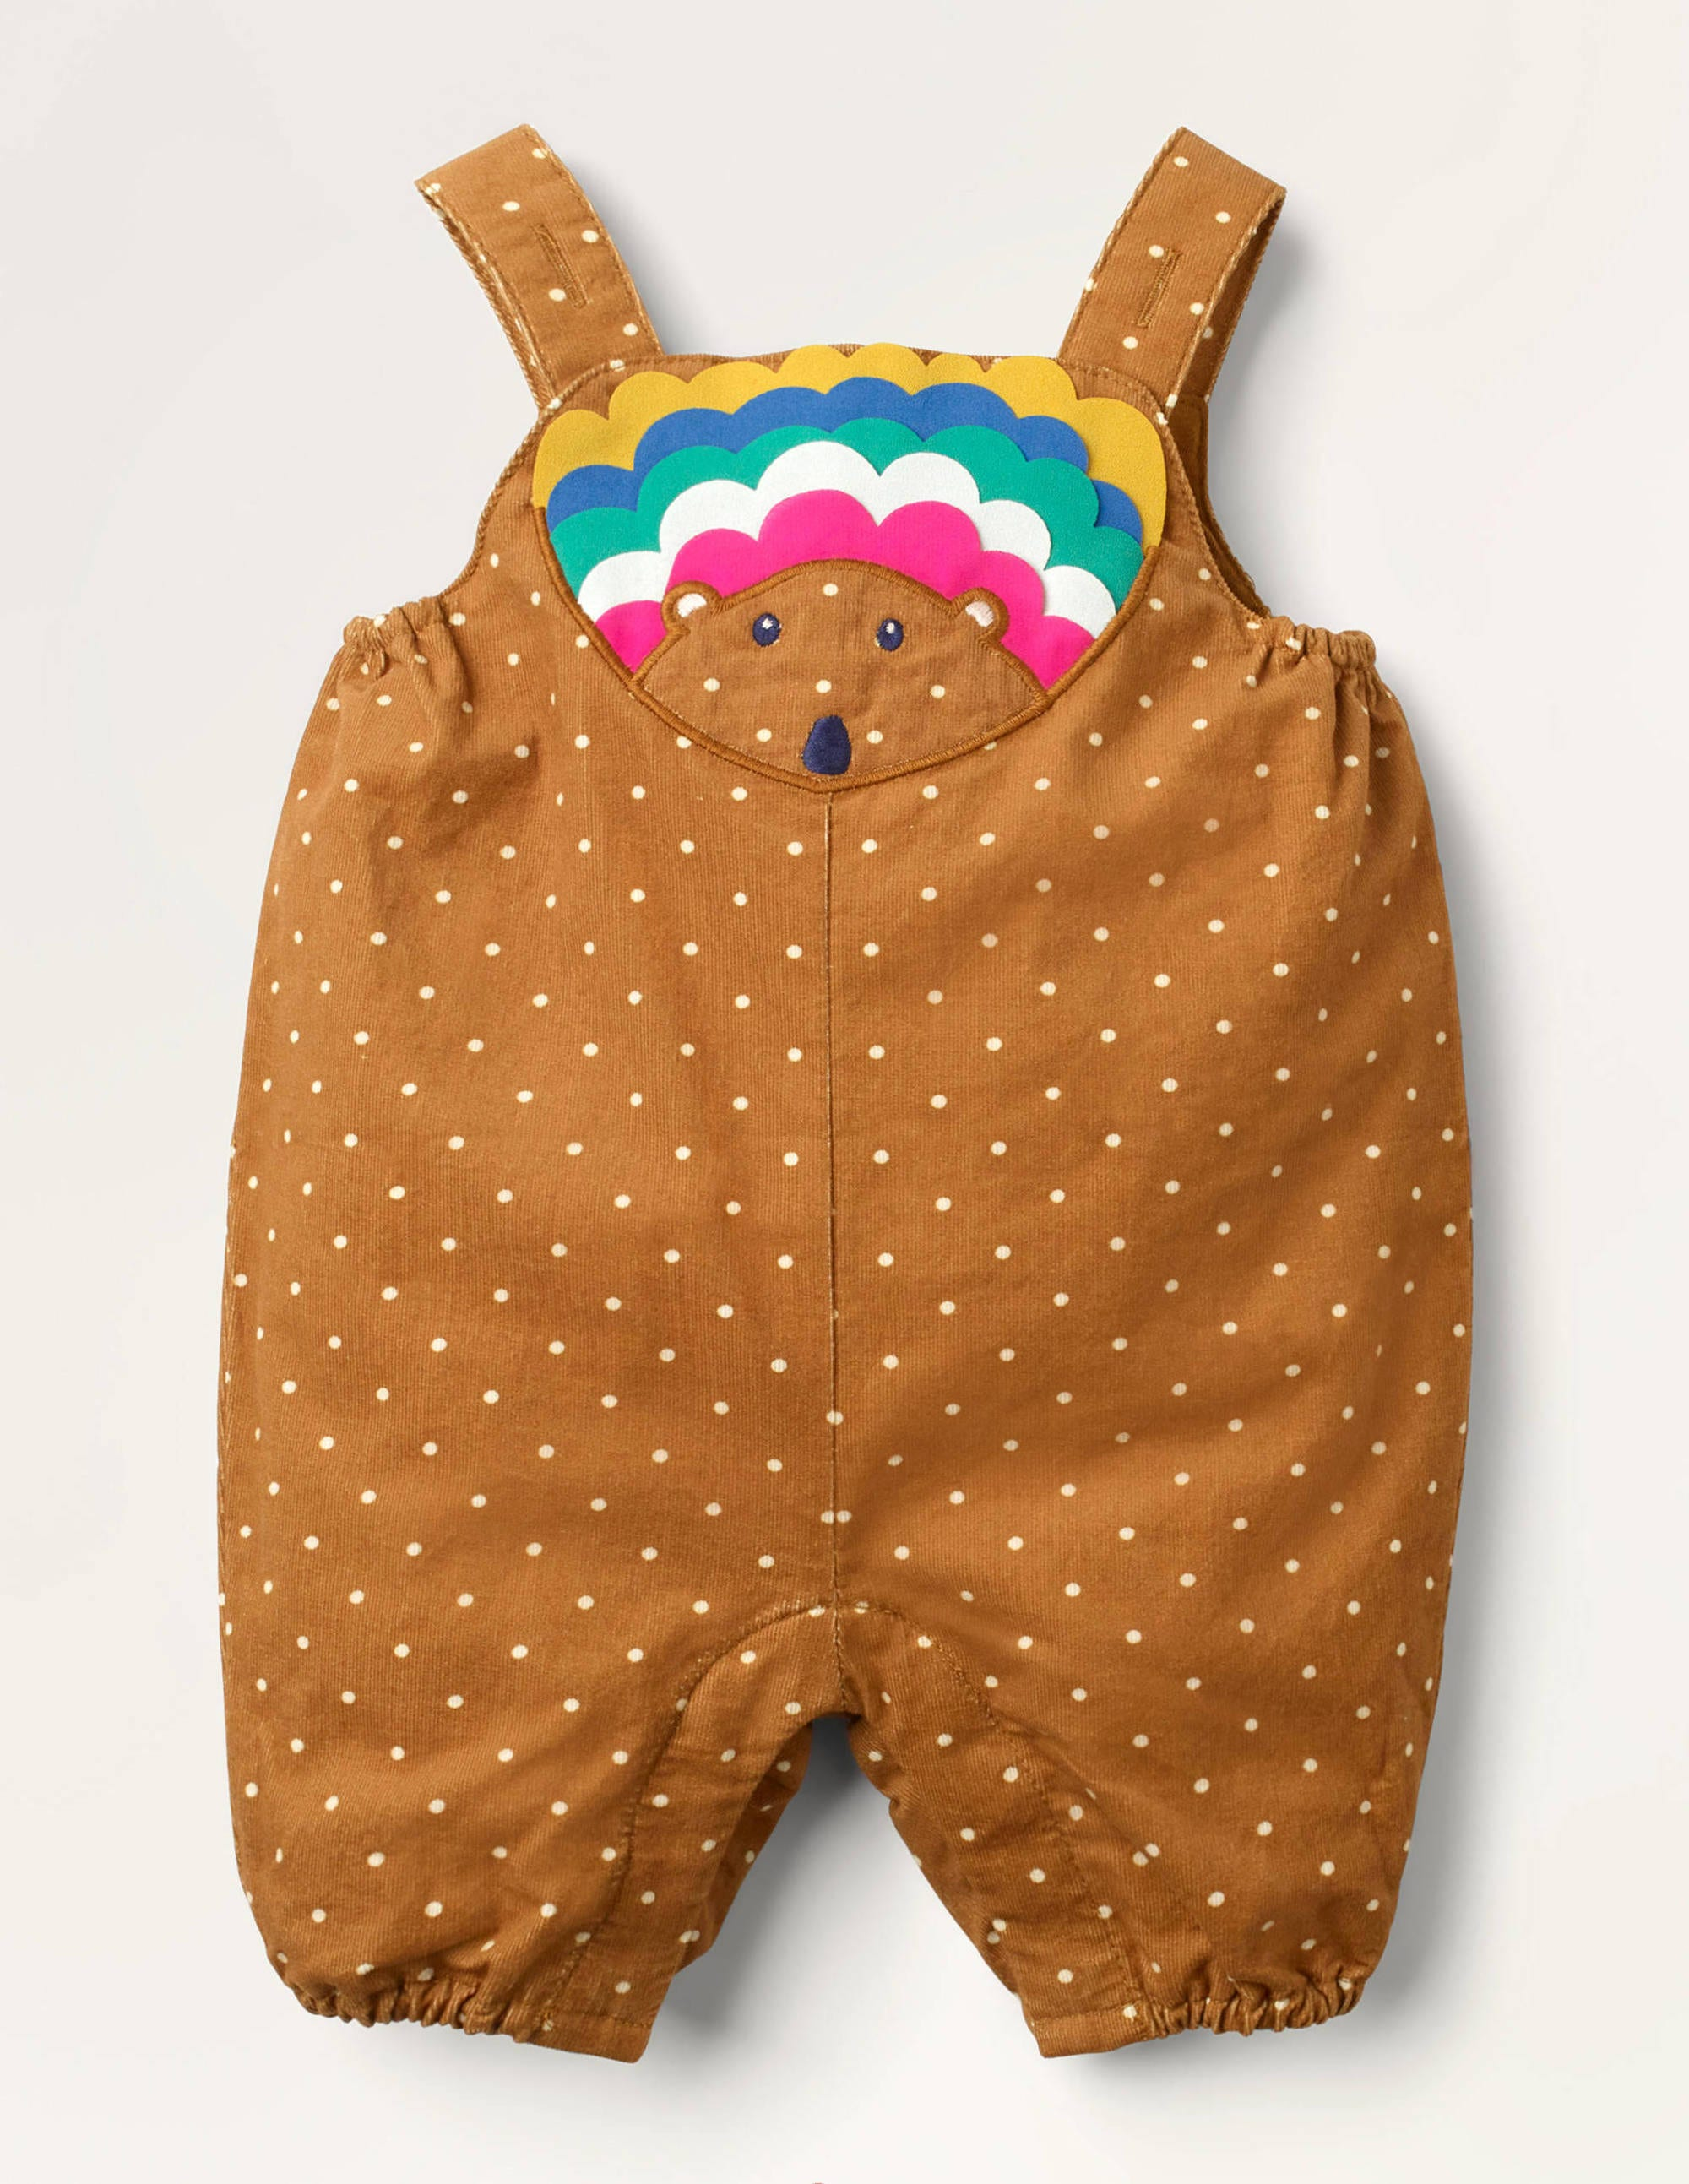 Boden Hedgehog Cord Overalls - Butterscotch Pin Spot